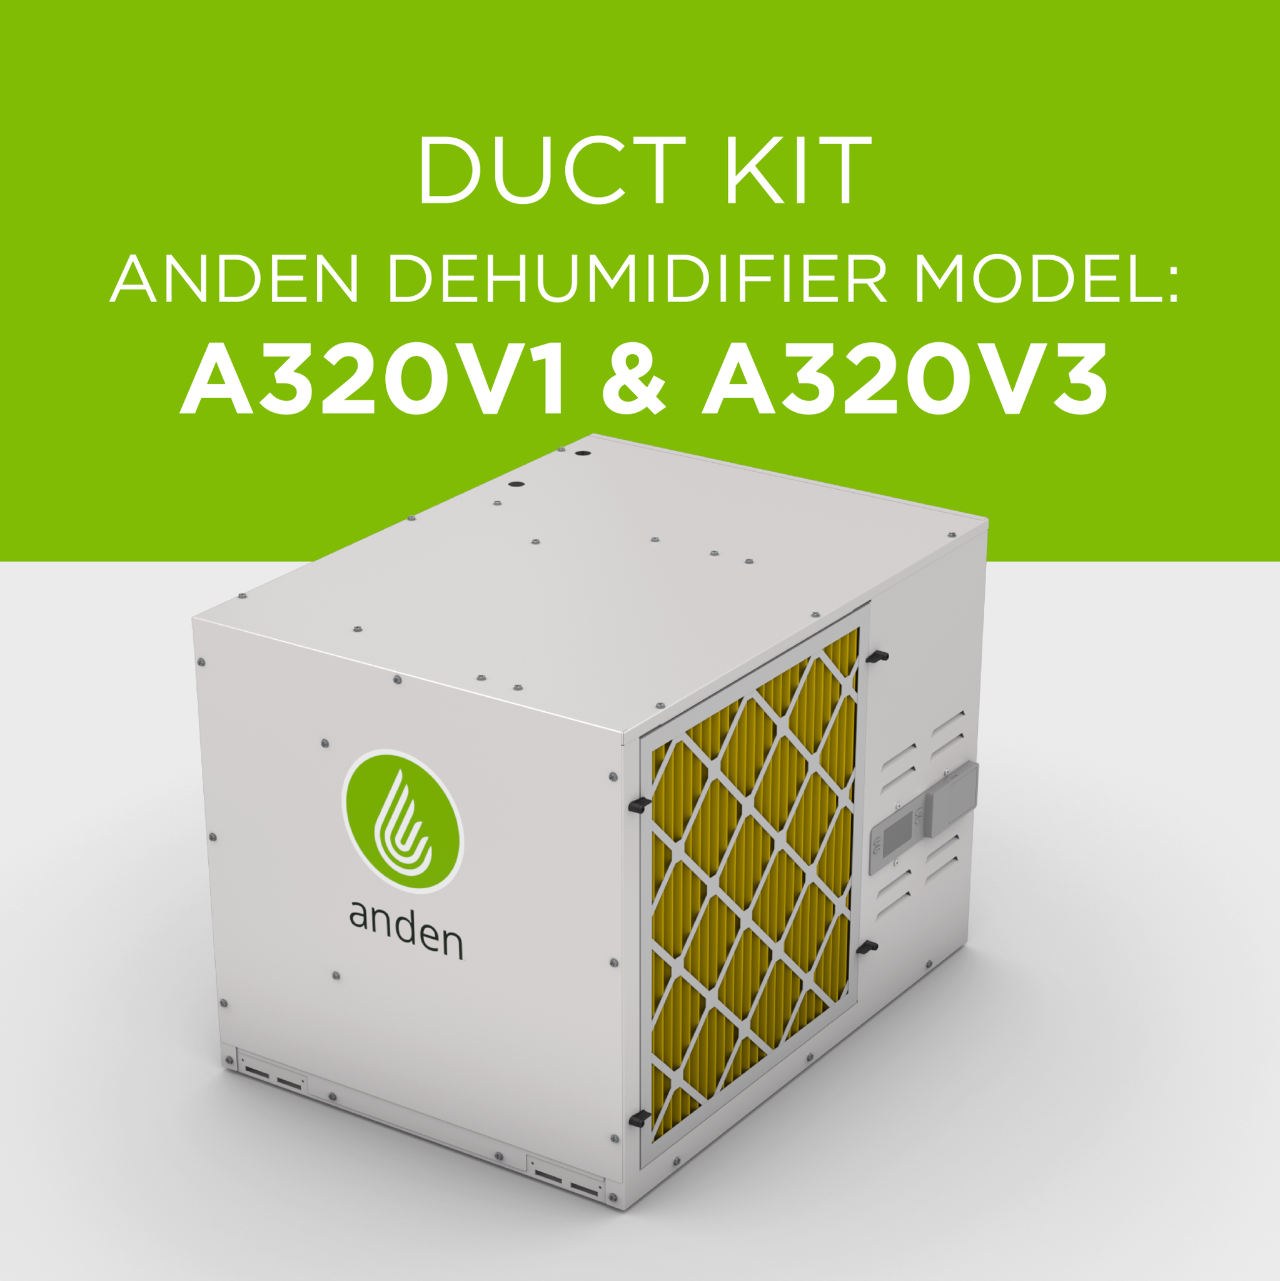 Anden-Dehumidifier-Model-A320V1-A320V3-Grow-Room